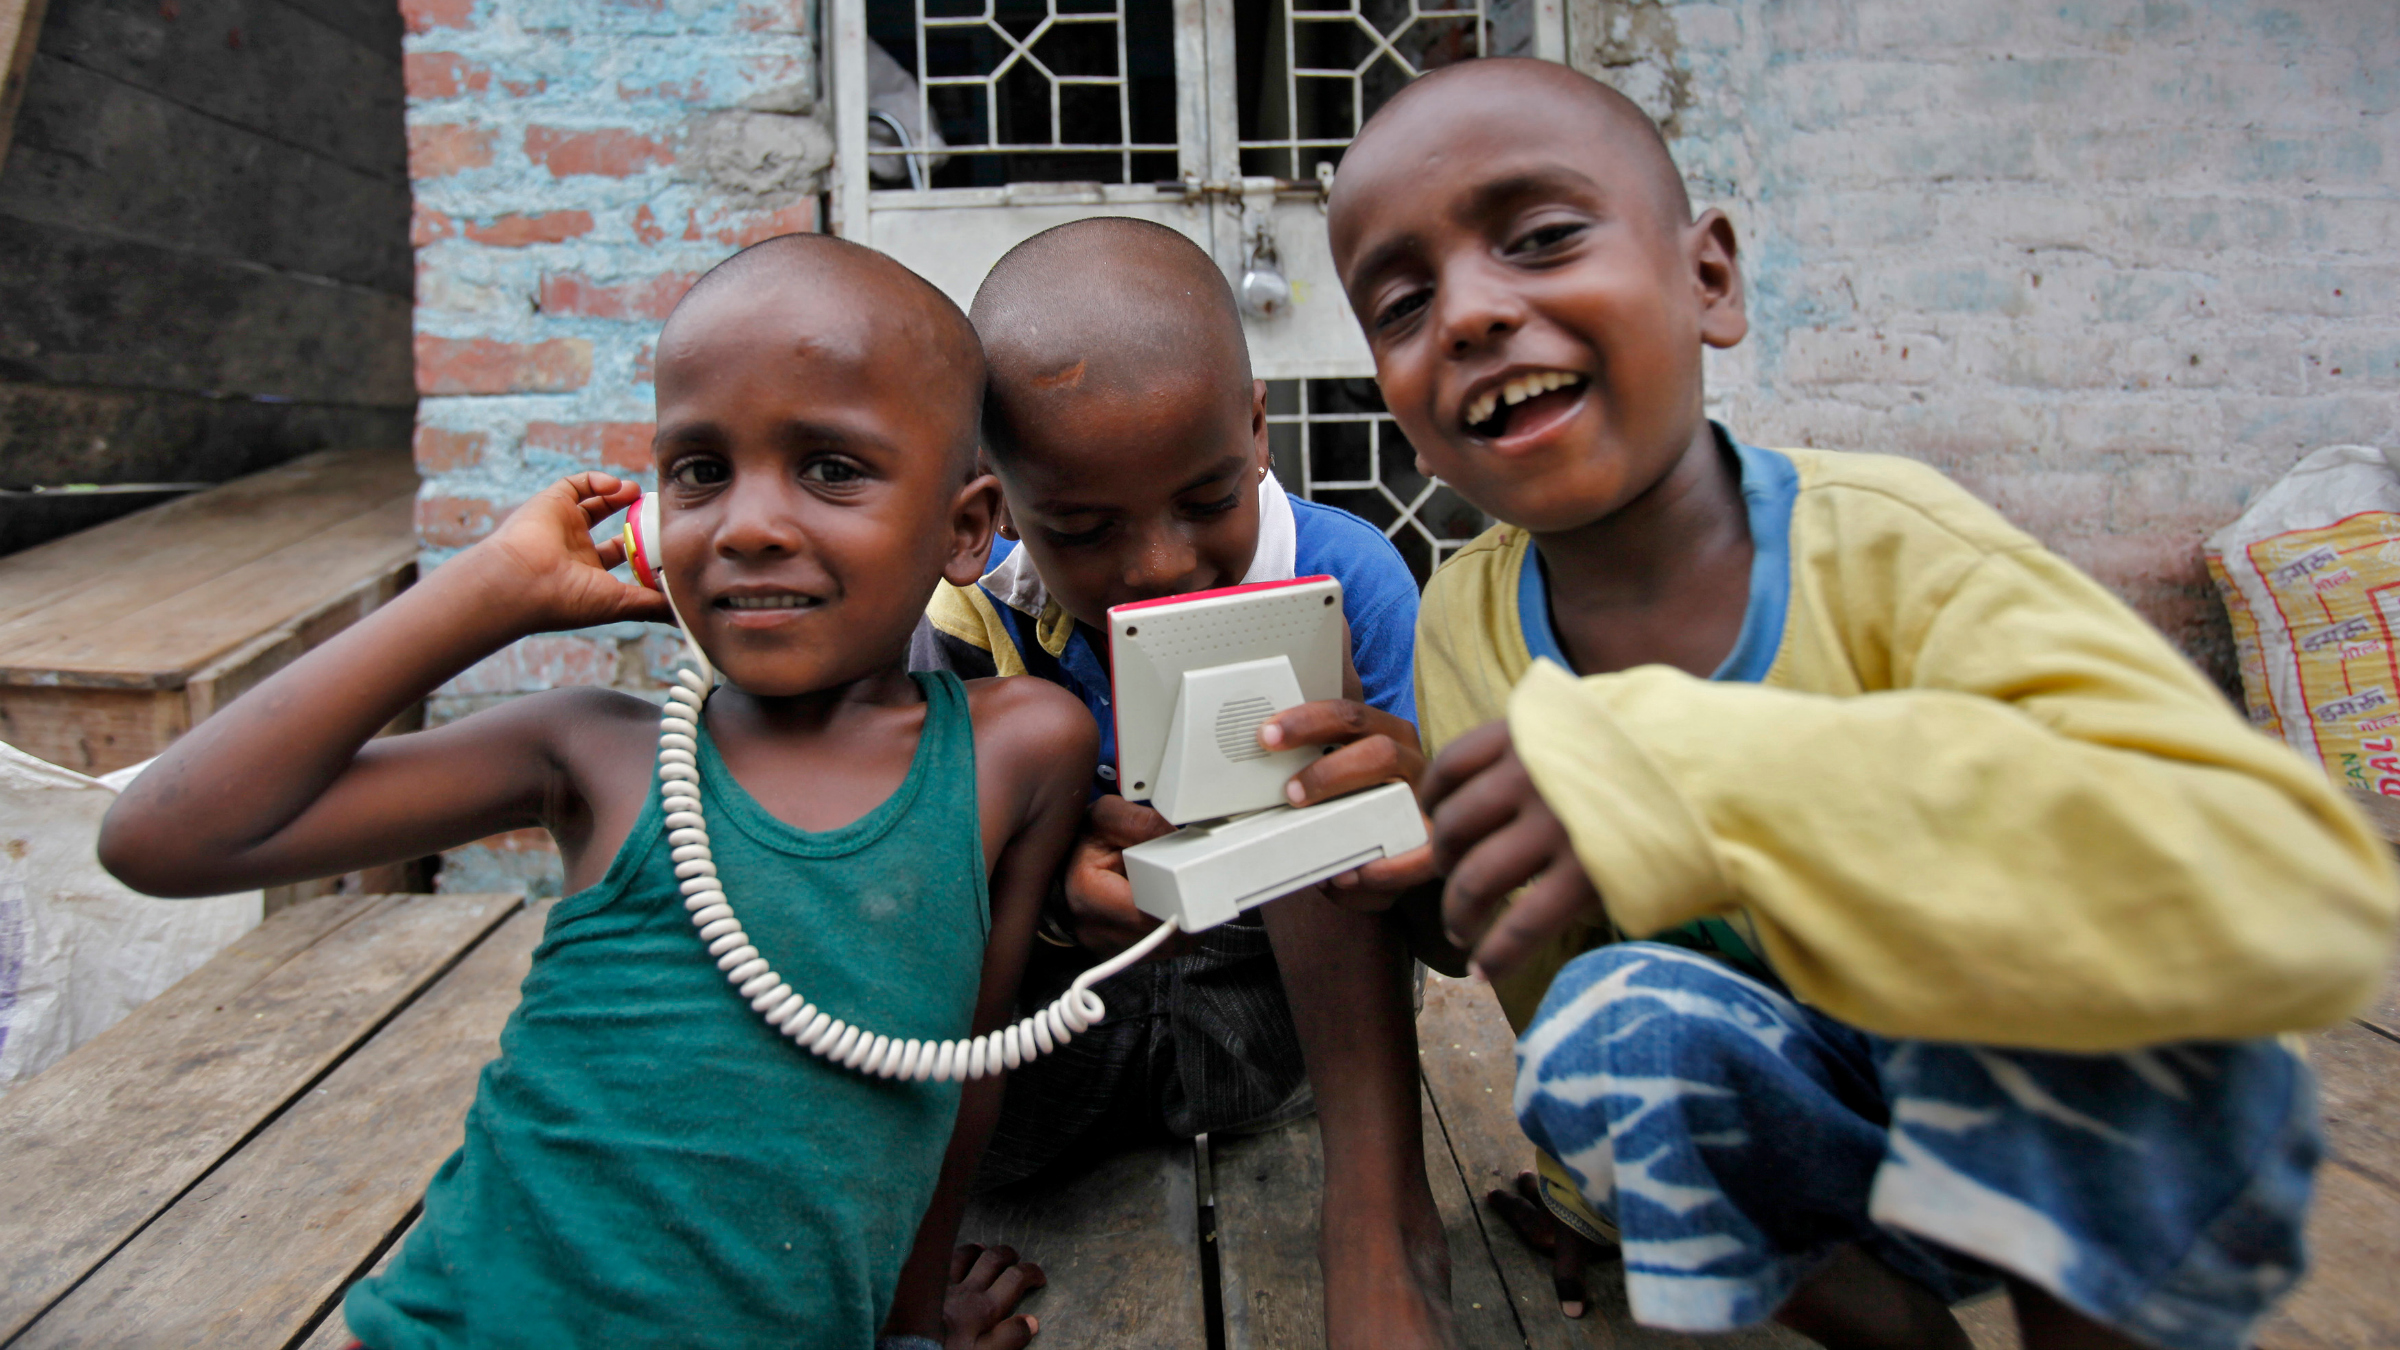 Indian kids playing with toy phones.